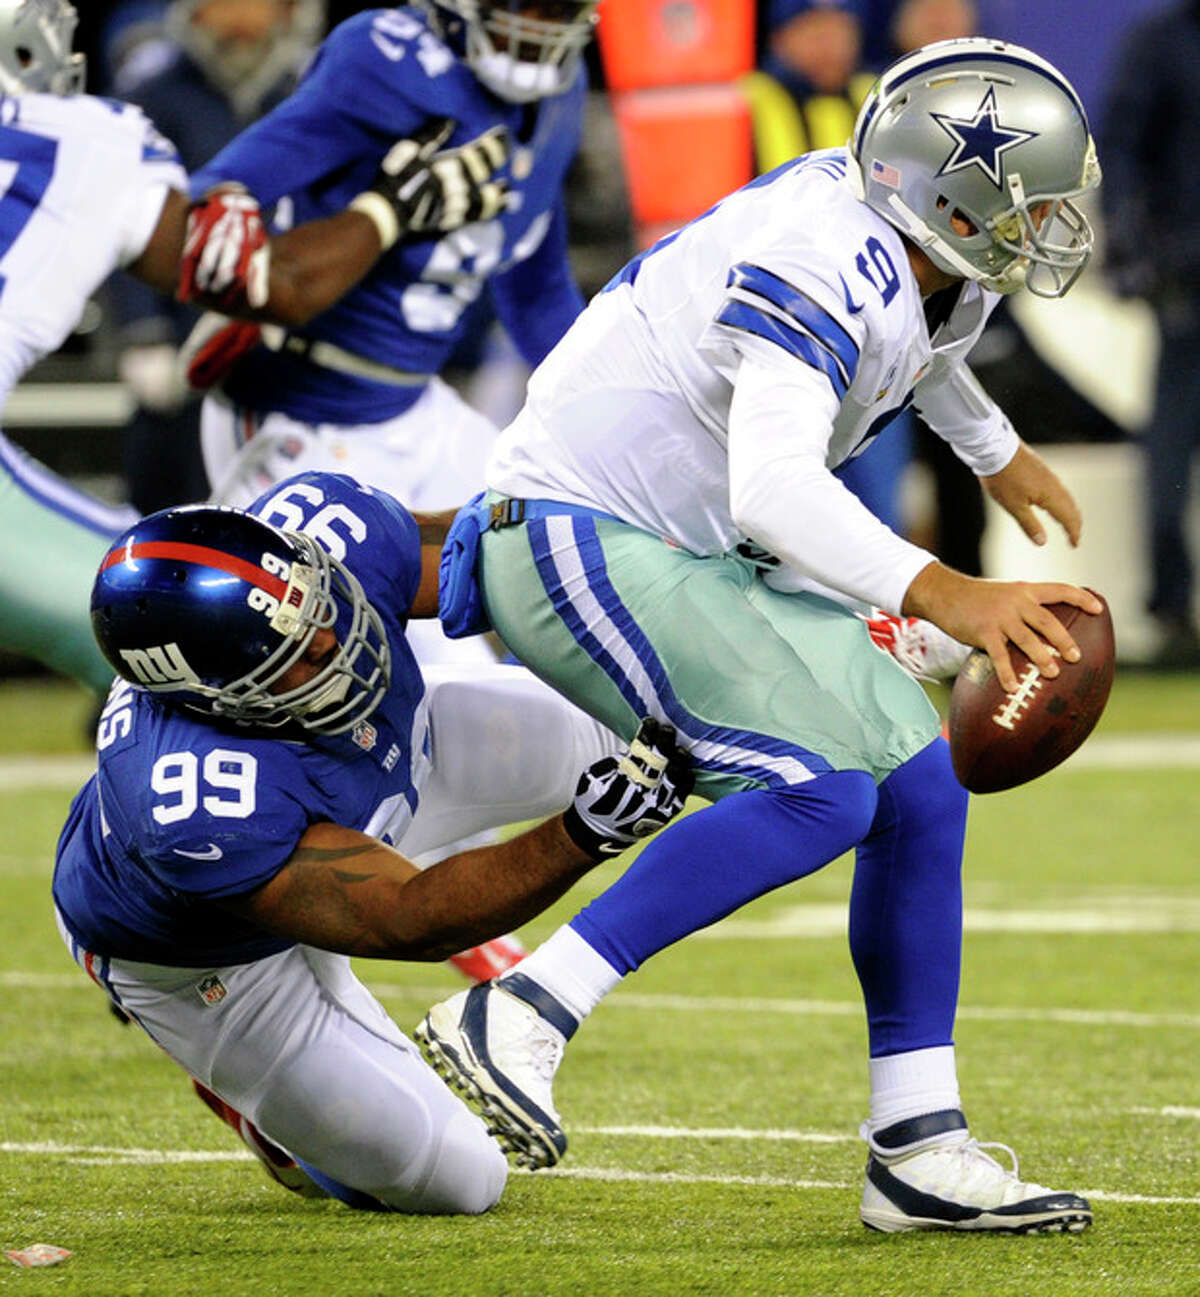 Dallas Cowboys quarterback Tony Romo (9) is sacked by New York Giants Cullen Jenkins (99) during the first half of an NFL football game, Sunday, Nov. 24, 2013, in East Rutherford, N.J. (AP Photo/Bill Kostroun)